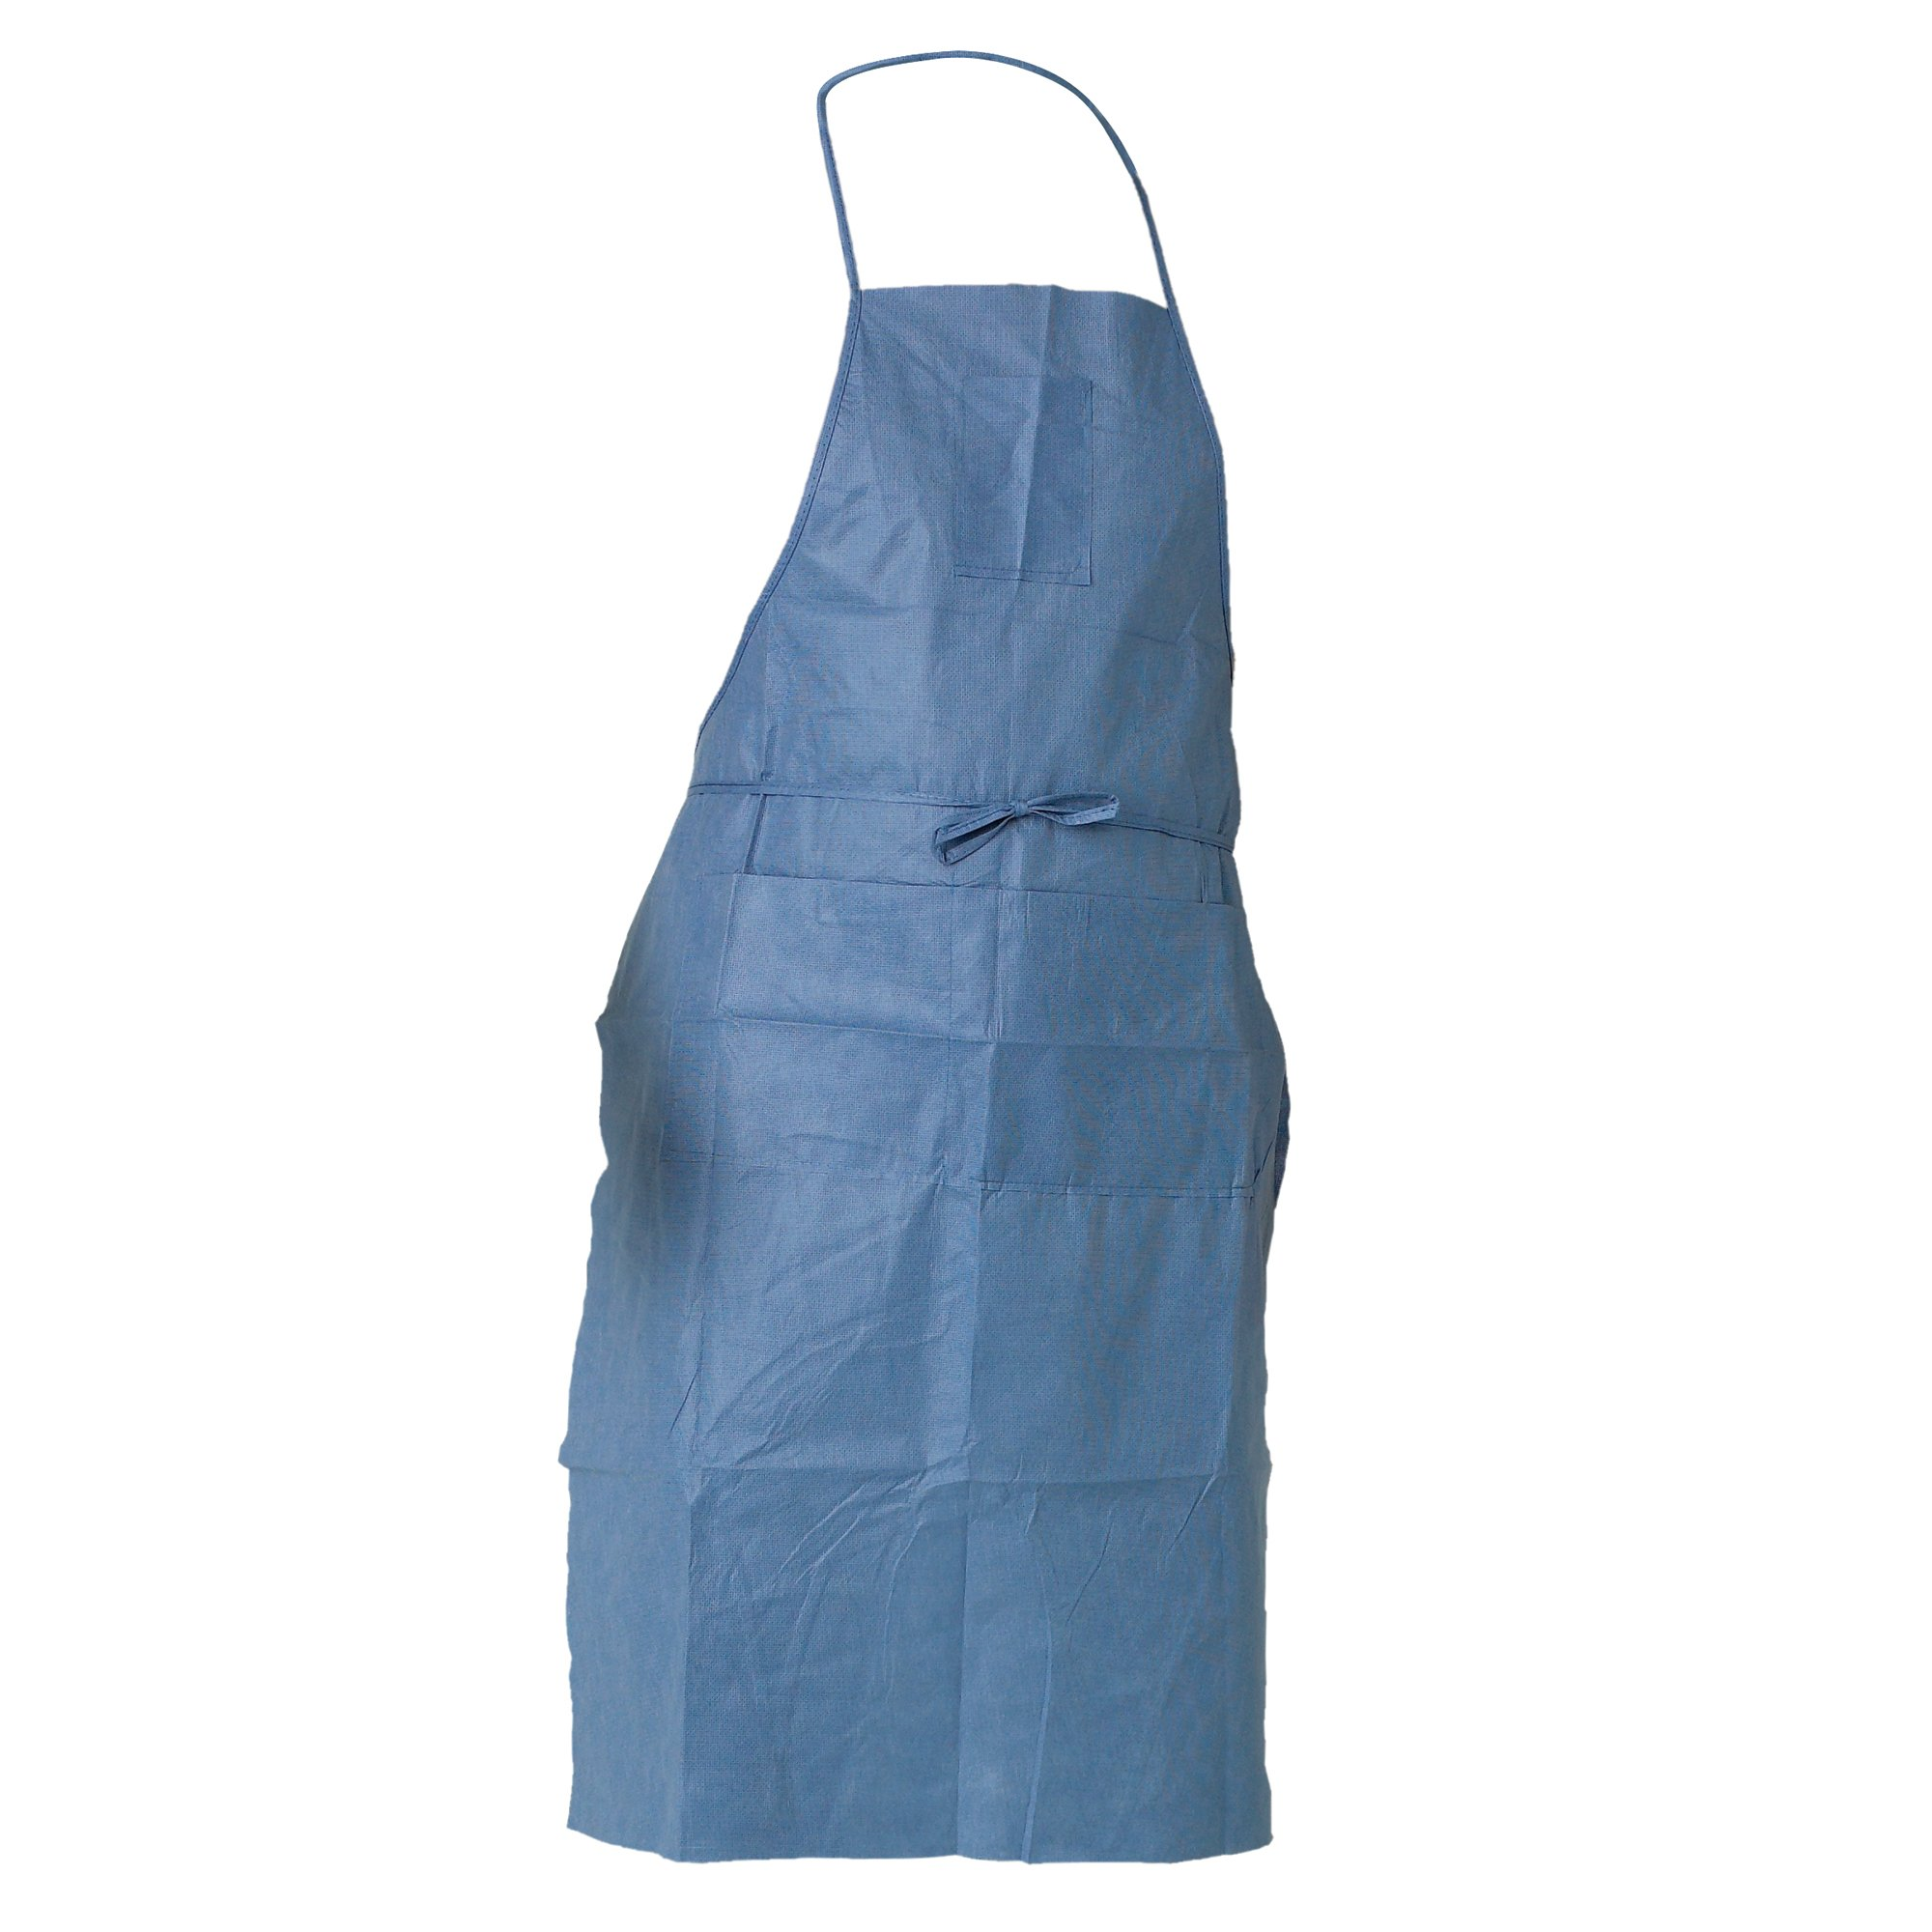 Kleenguard A20 Breathable Particle Protection Apron (36260), Universal Size (One Size), Tie Back, Blue Denim with Pockets, 100 / Case, 10 Bags of 10 Aprons by Kimberly-Clark Professional (Image #9)